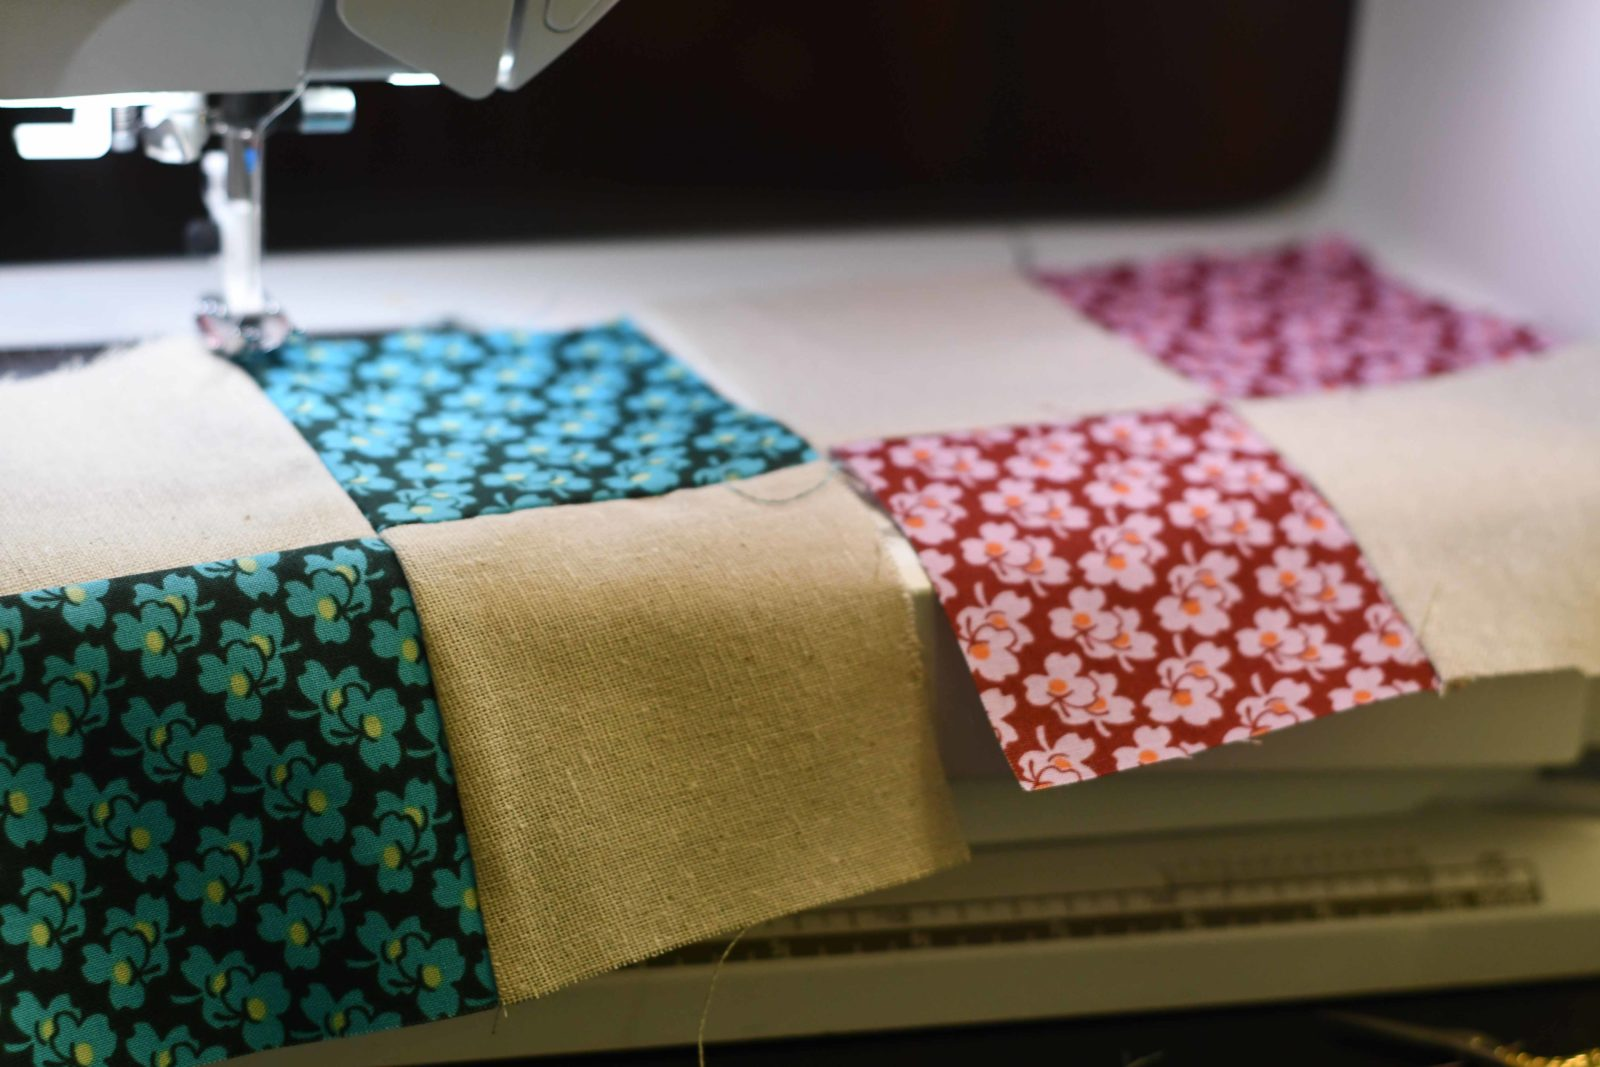 Sew Many Squares Quilt Cricut Maker 4 Square Block